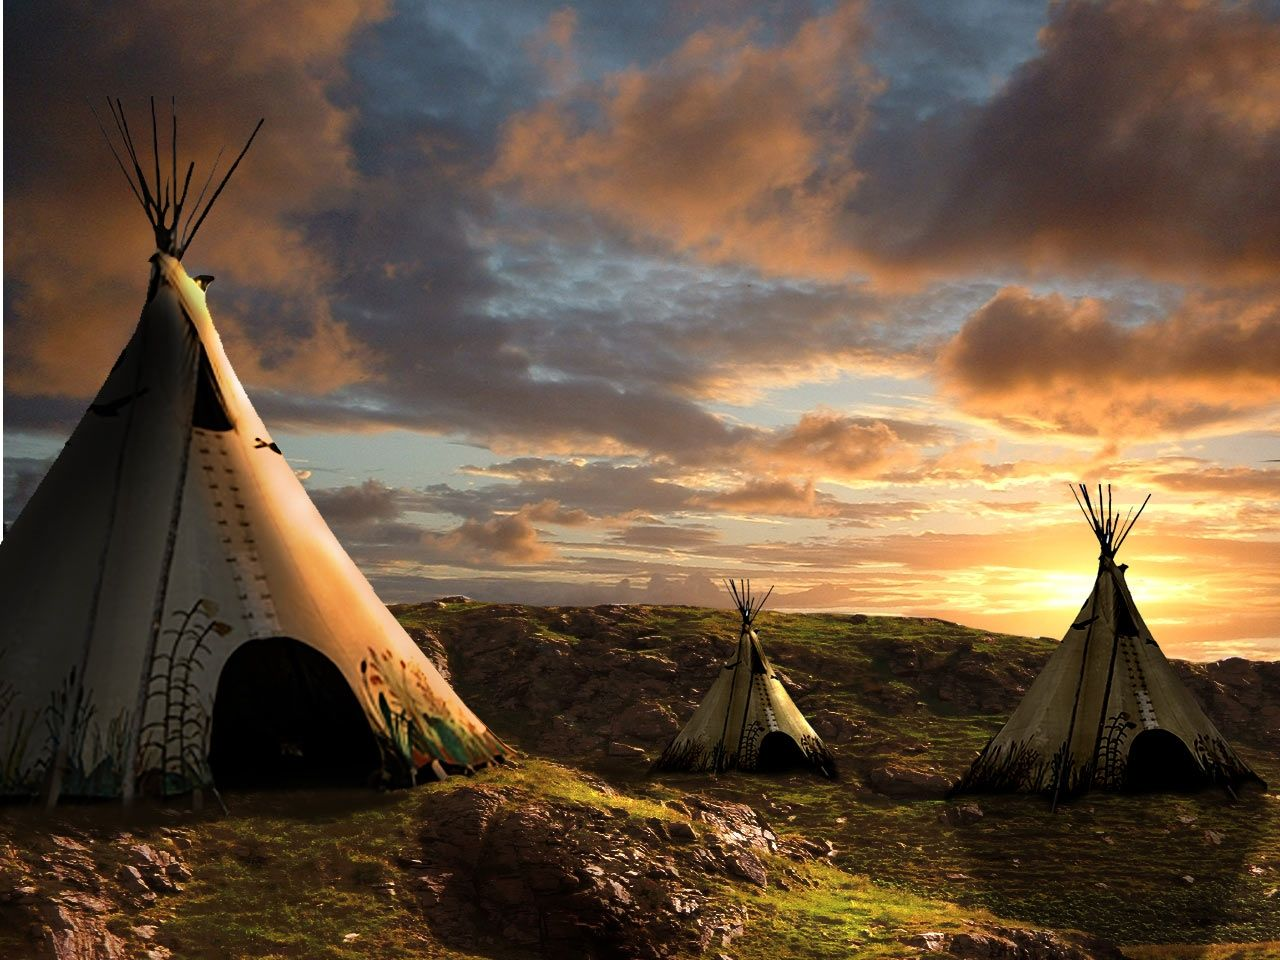 1280x960 Sunset picture, by George55 for: teepee photoshop contest - Pxleyes.com